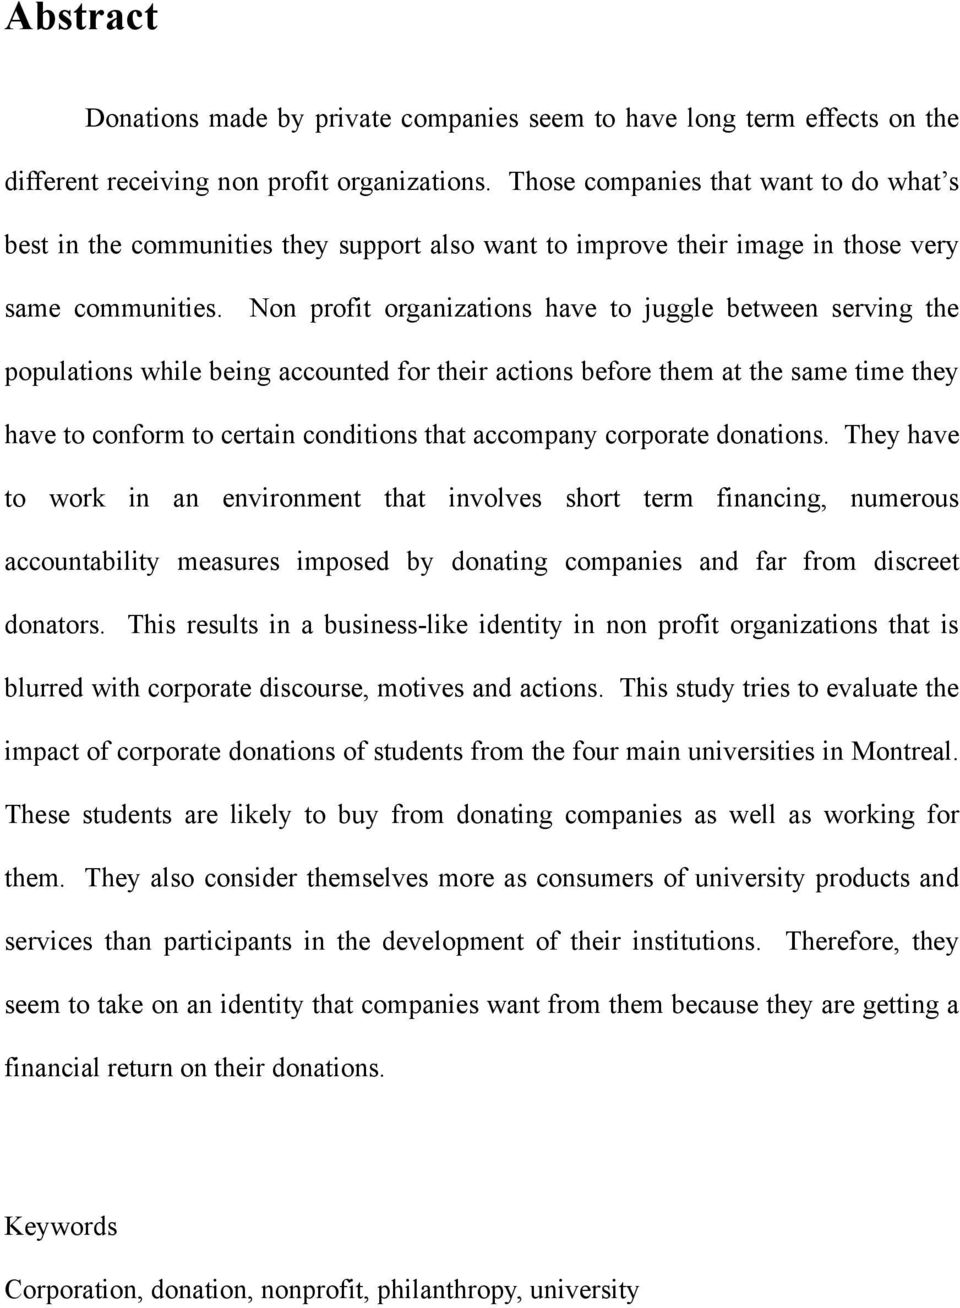 Non profit organizations have to juggle between serving the populations while being accounted for their actions before them at the same time they have to conform to certain conditions that accompany